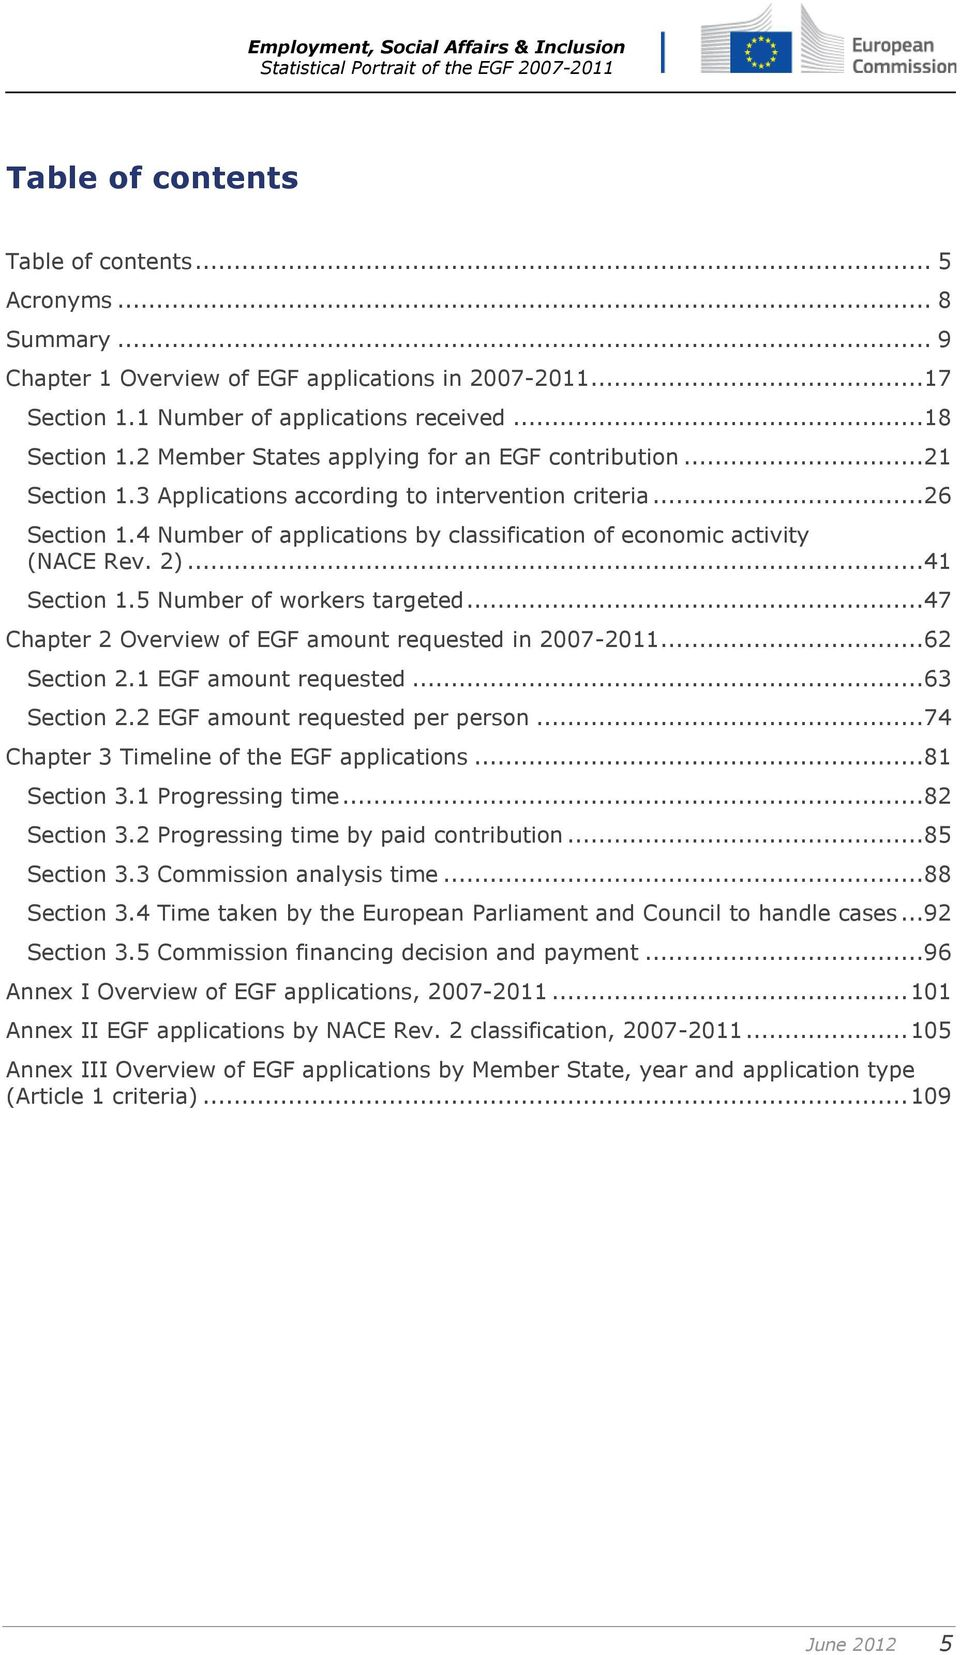 4 Number of applications by classification of economic activity (NACE Rev. 2)...41 Section 1.5 Number of workers targeted...47 Chapter 2 Overview of EGF amount requested in 2007-2011...62 Section 2.